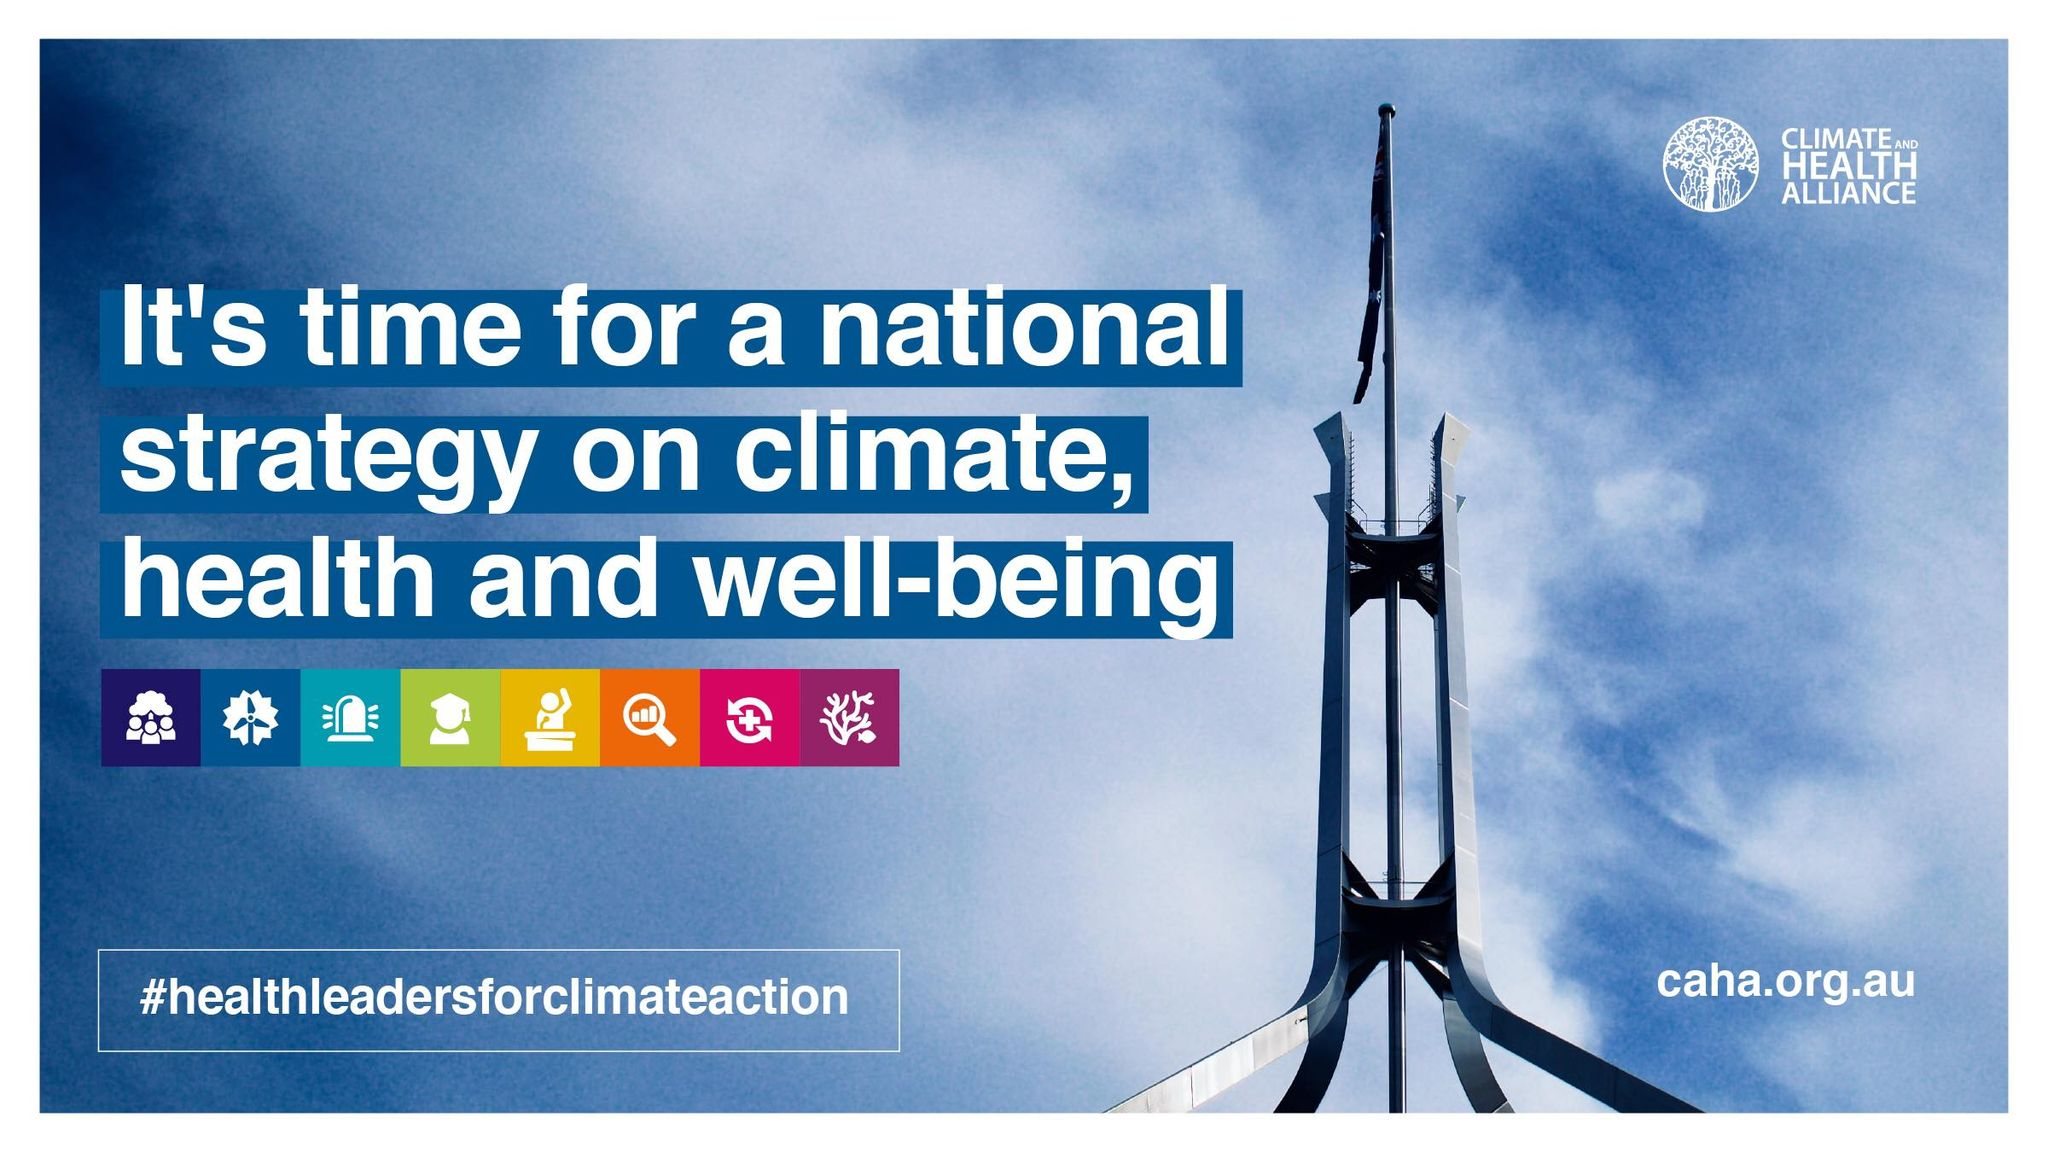 It's time for a national strategy on climate, health and wellbeing